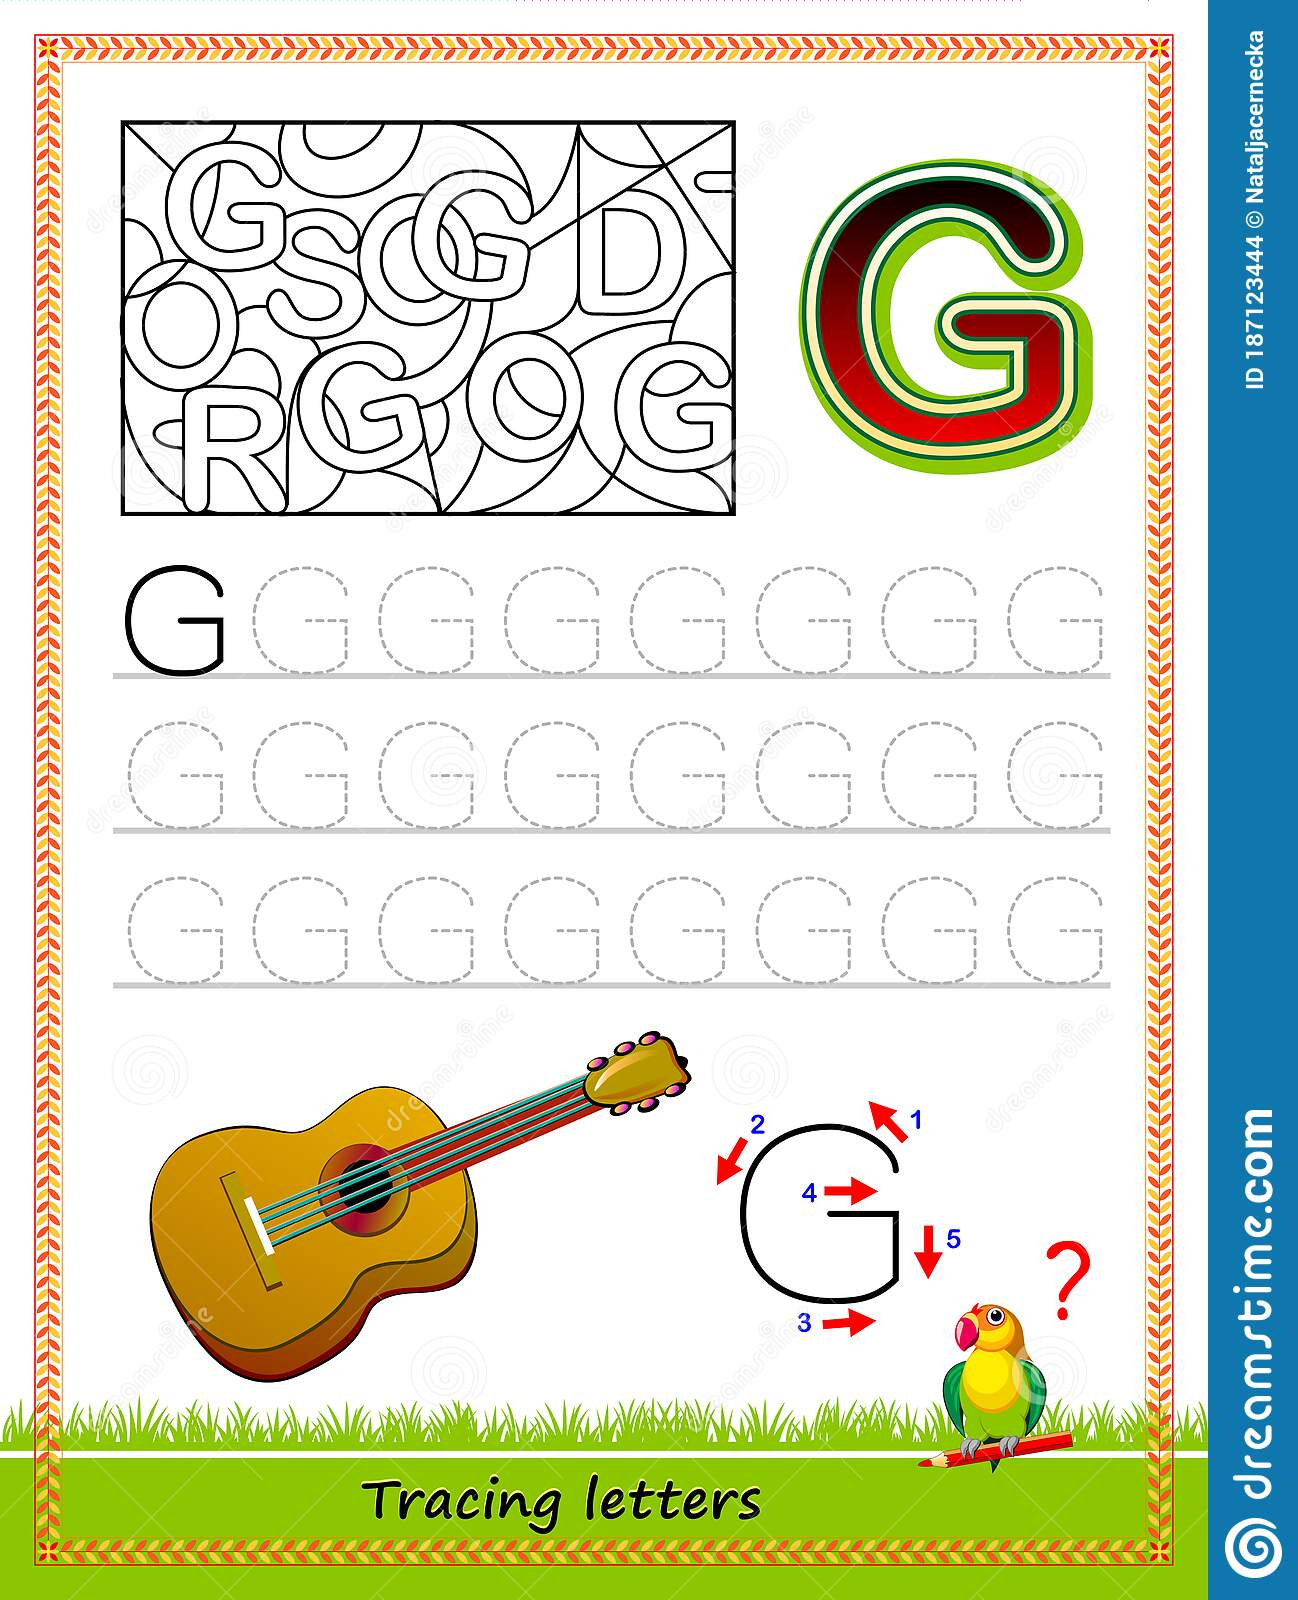 Worksheet For Tracing Letters. Find And Paint All Letters G